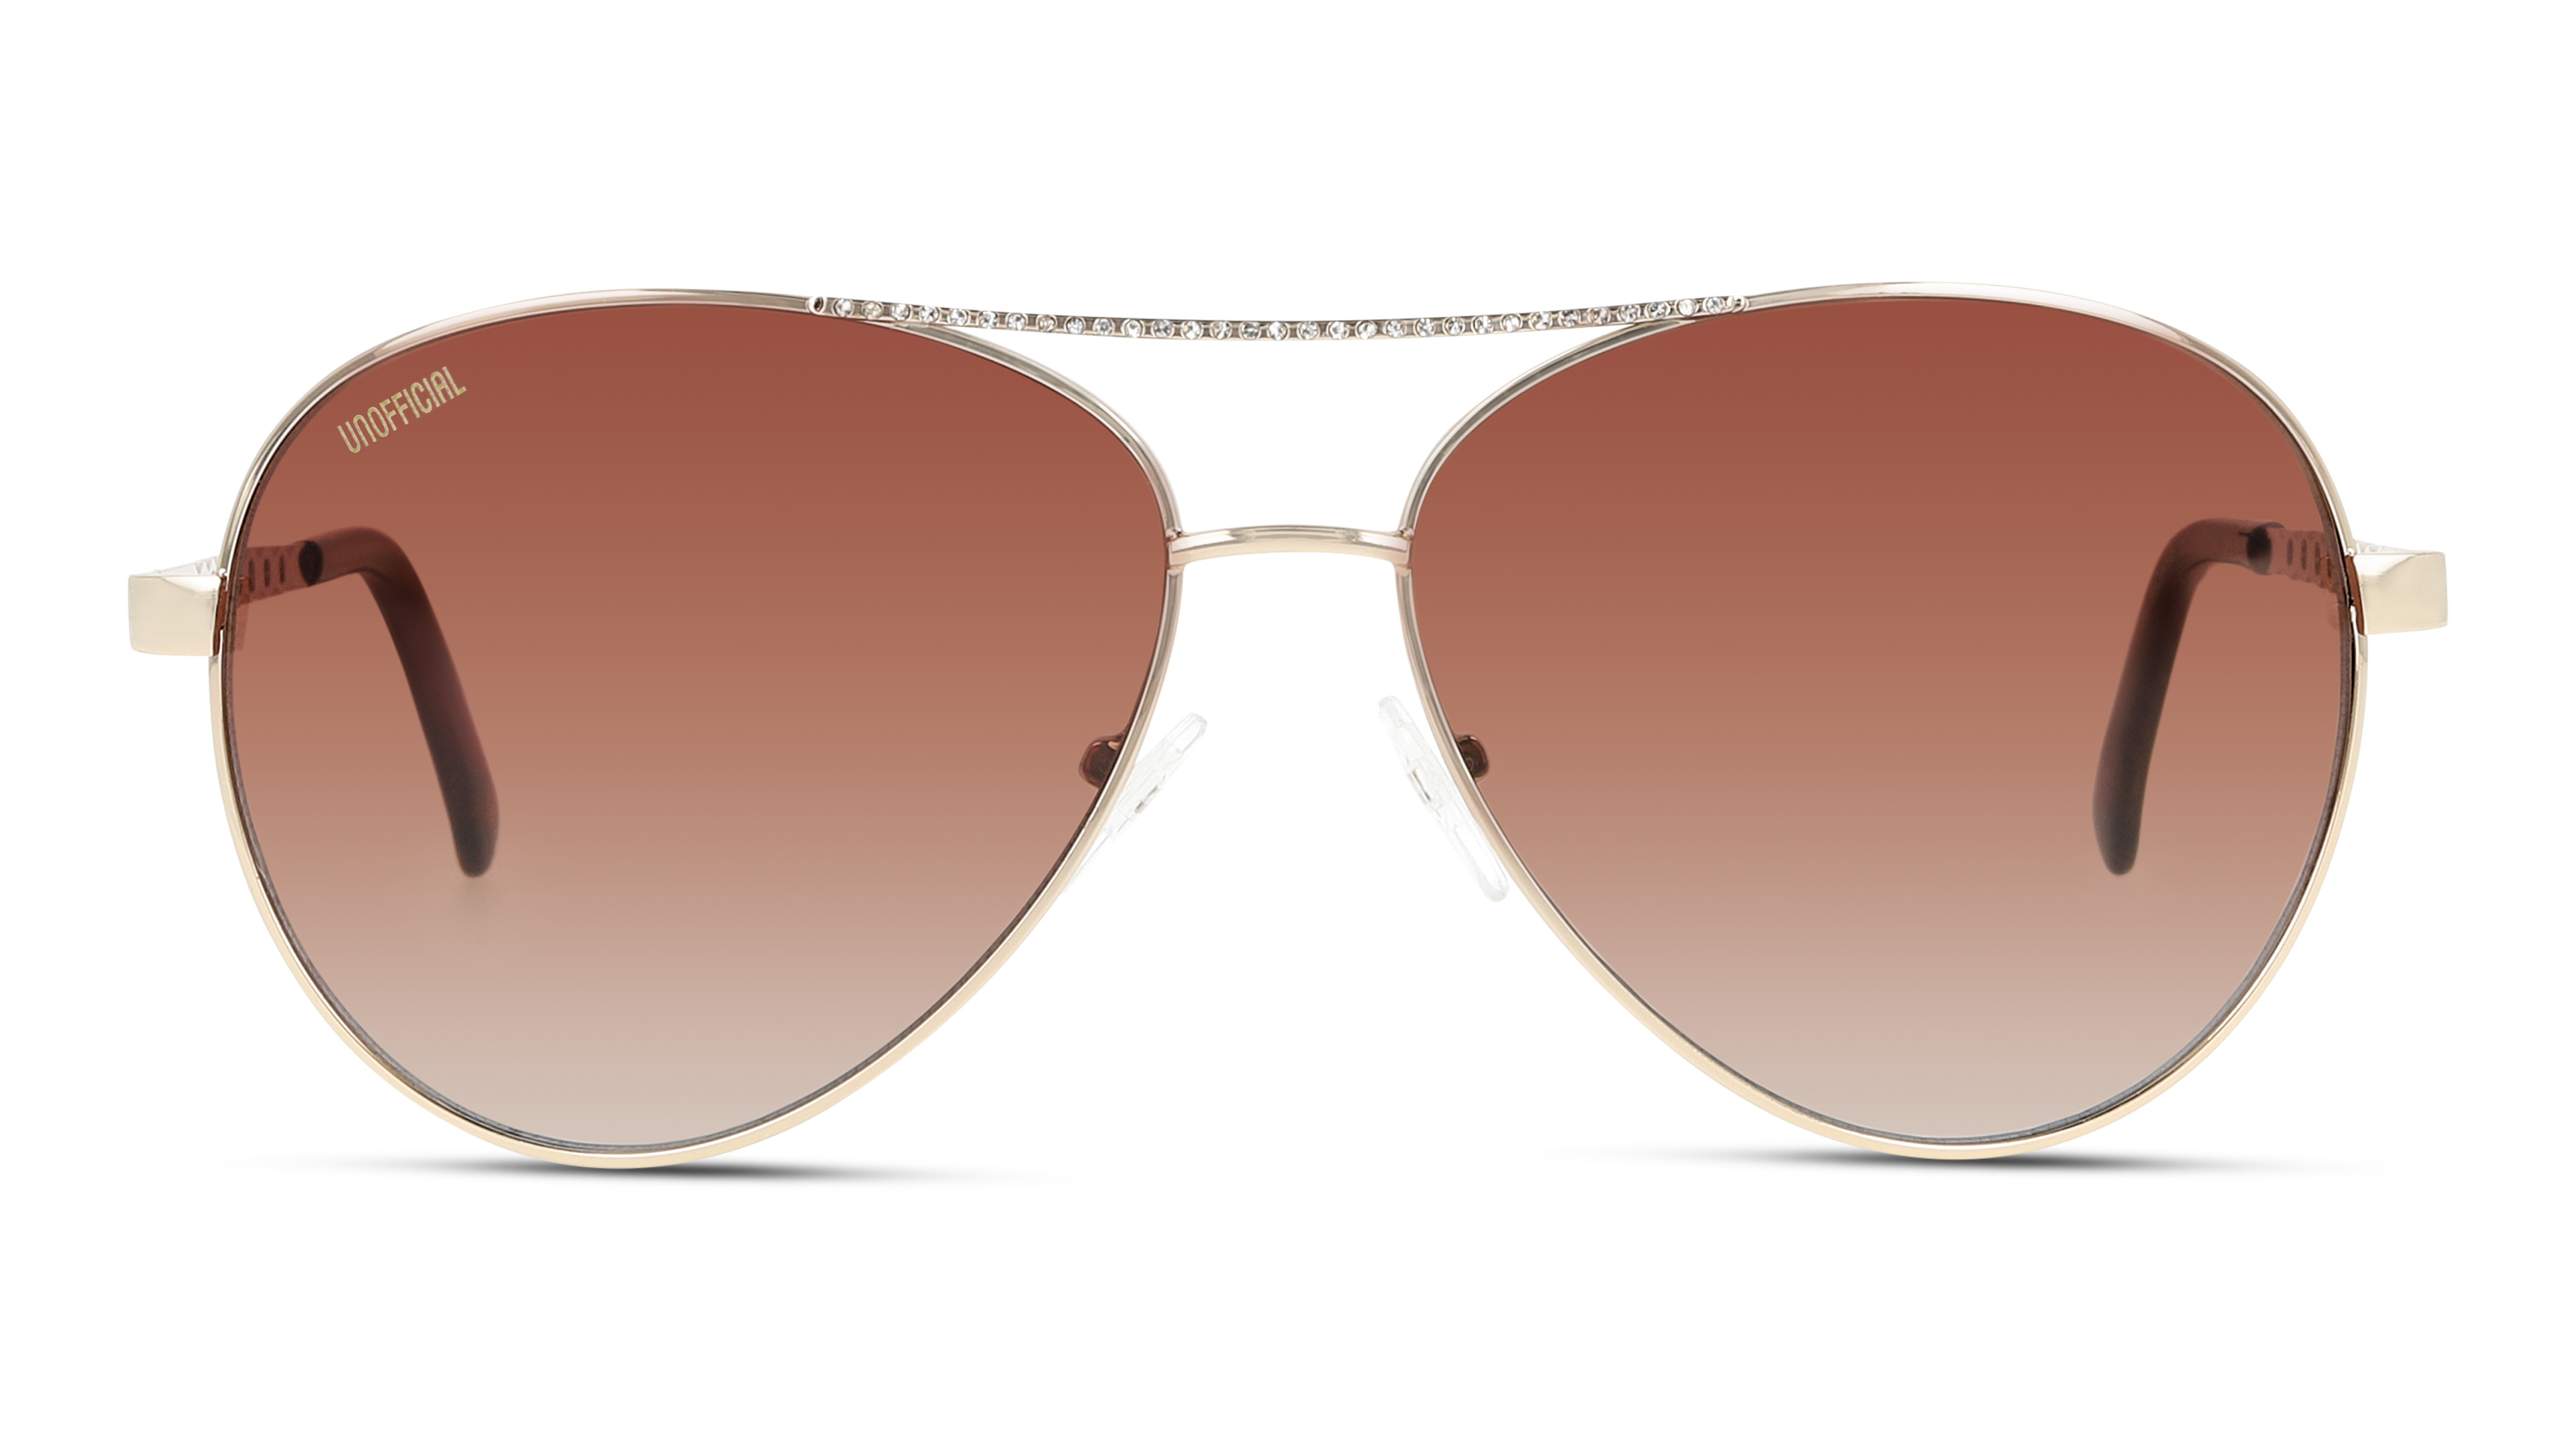 8719154741296-front-01-unofficial-unsf0034-eyewear-gold-gold